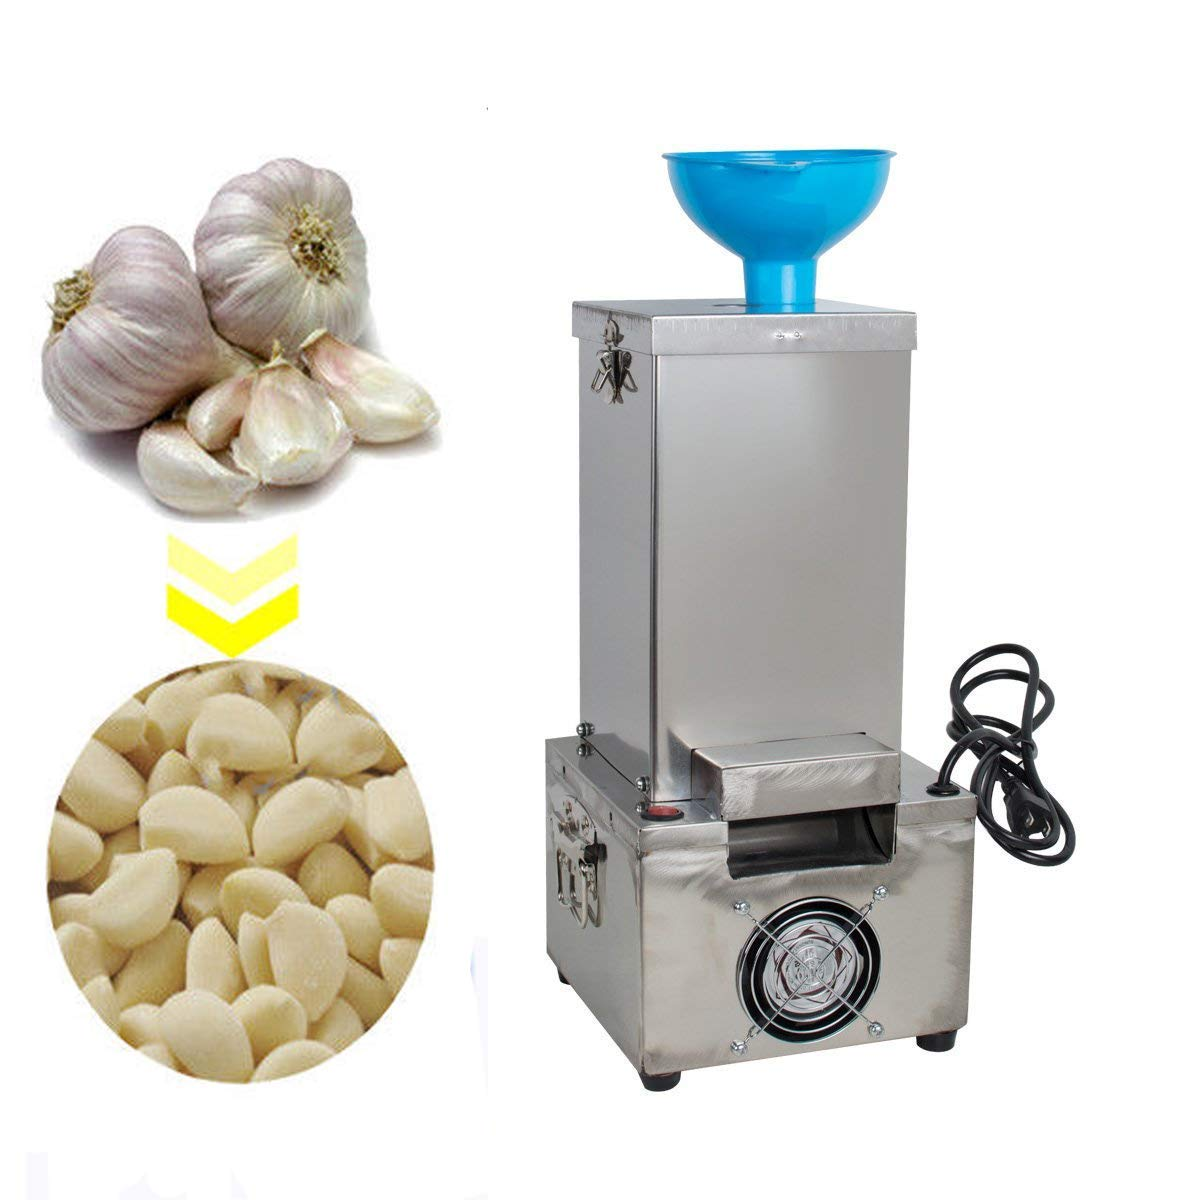 Zinnor Garlic Peeler Machine Commercial Electric Stainless Steel Silicone Garlic Peeling Machine 110V 180W Garlic Peeler Machine Fast and Labor-saving Automatic Peeler (shipping from US) by Zinnor